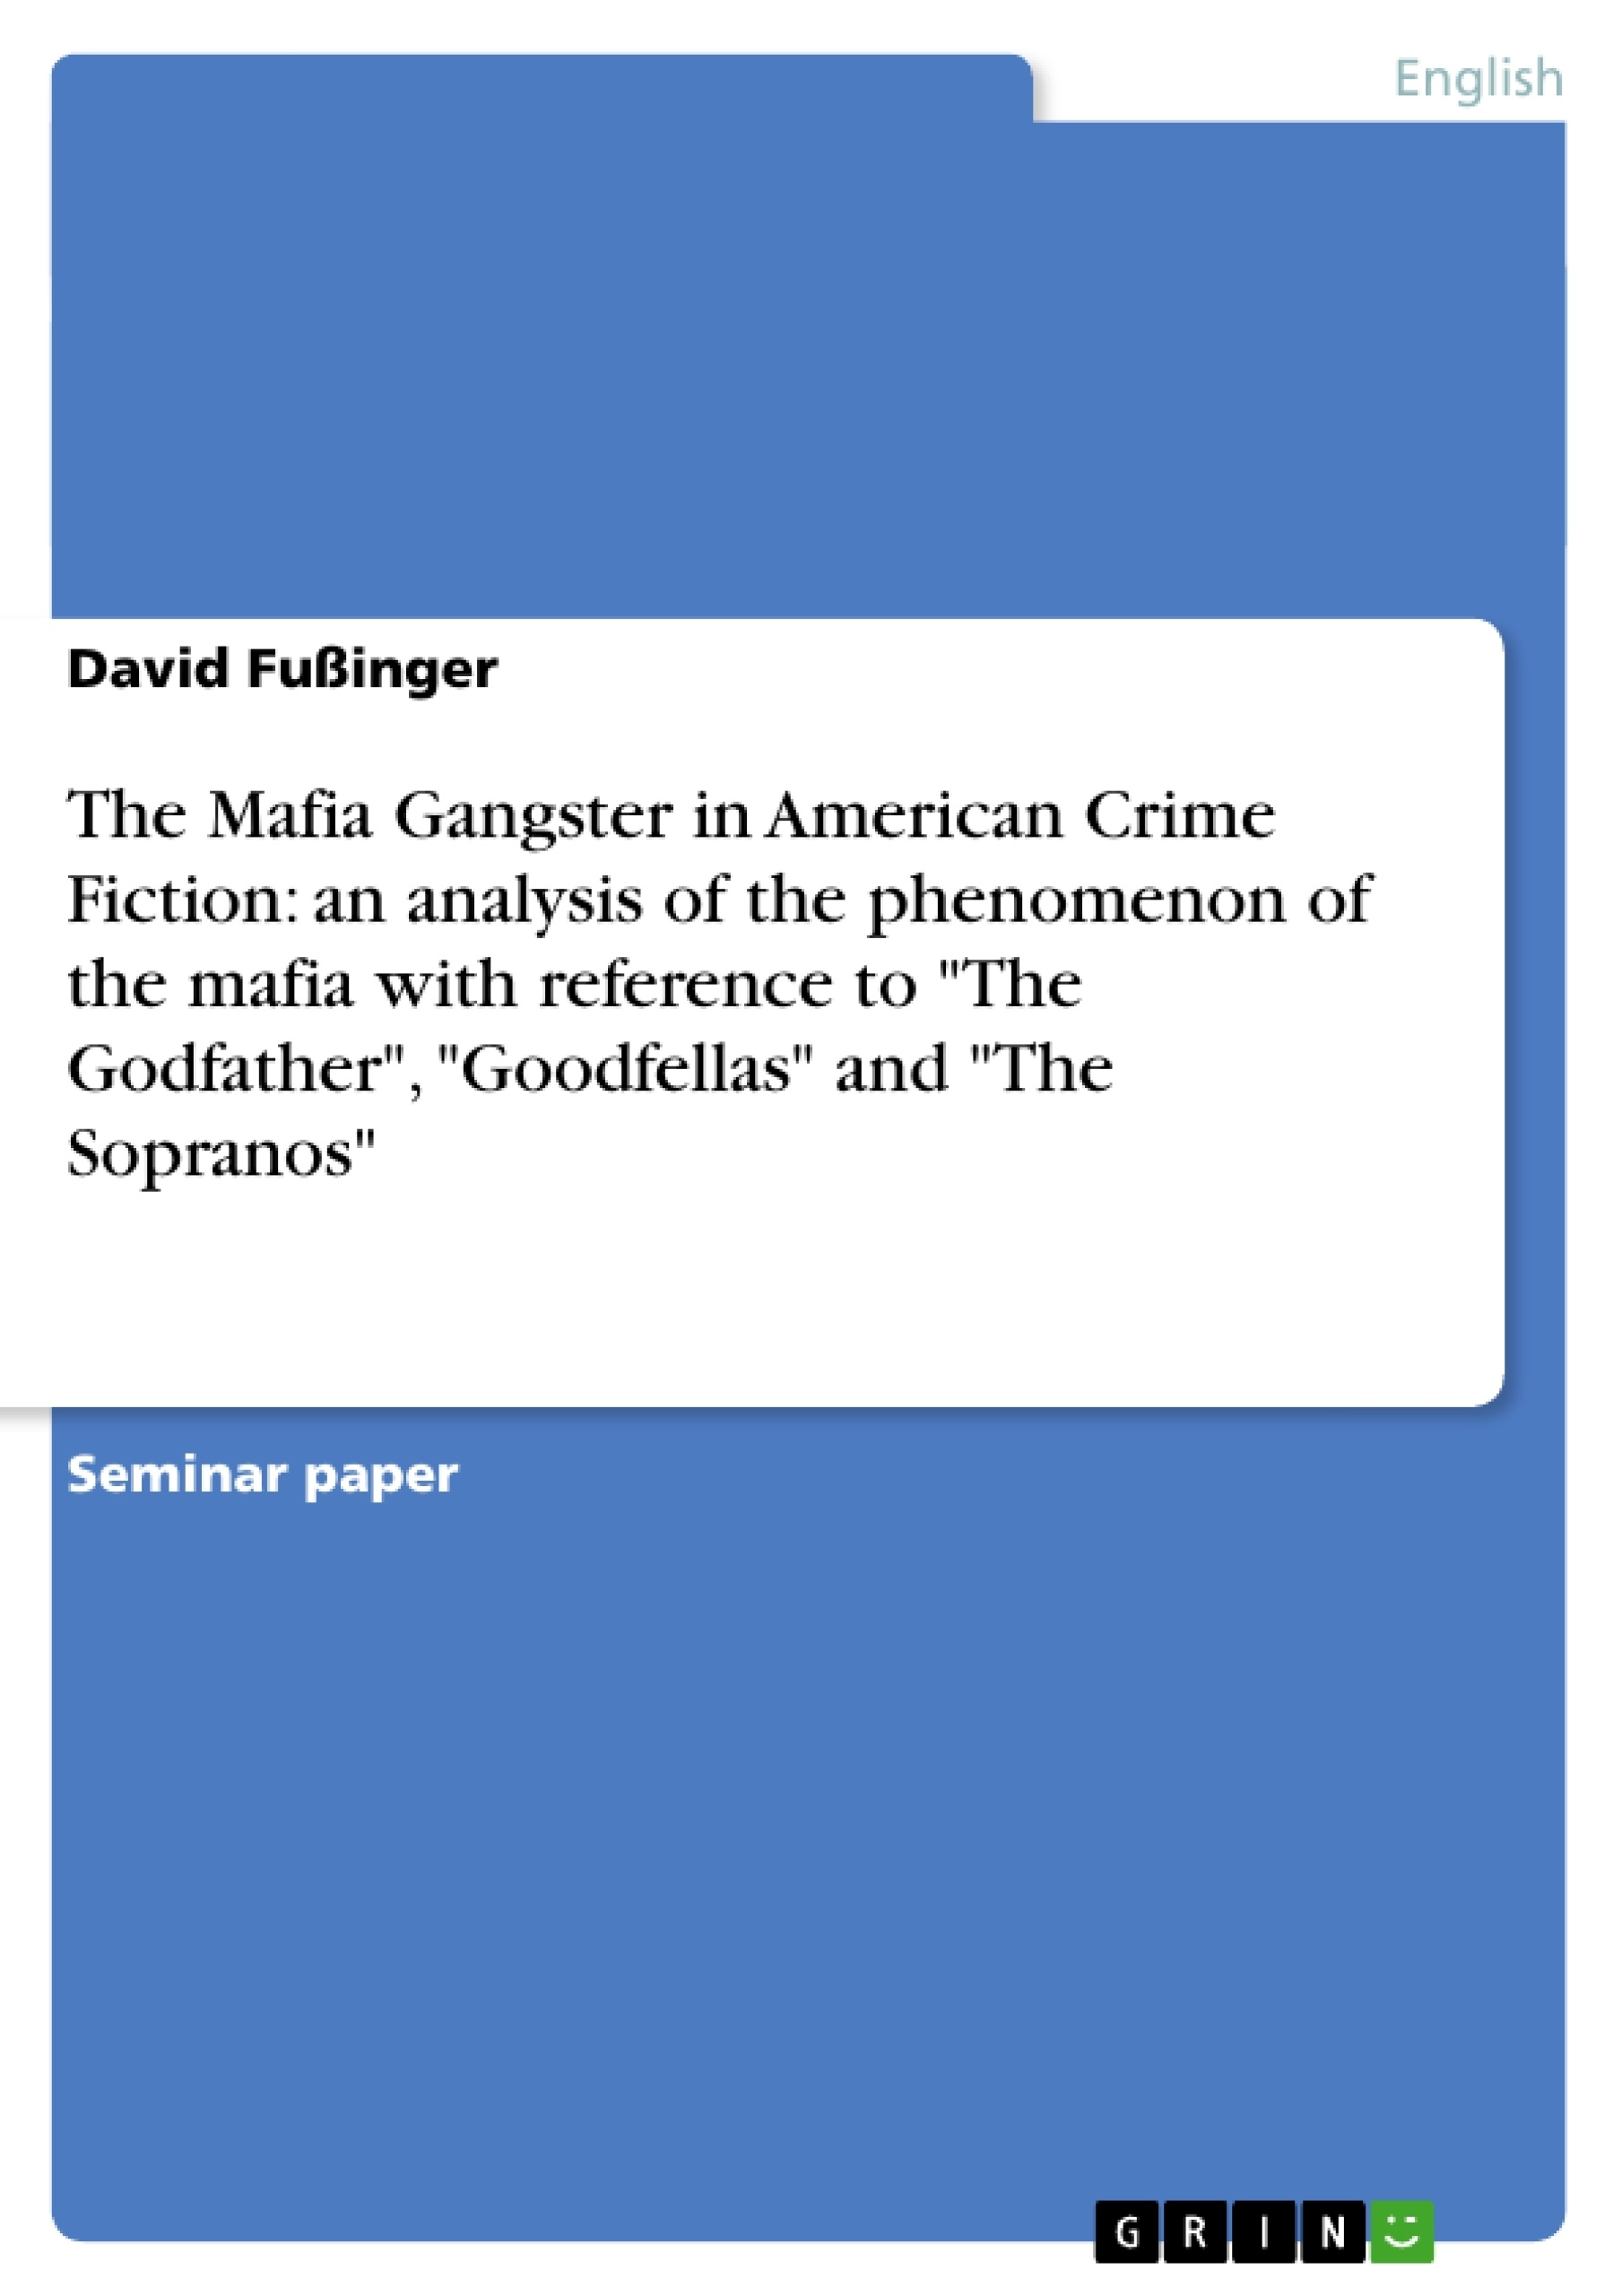 "Title: The Mafia Gangster in American Crime Fiction: an analysis of the phenomenon of the mafia with reference to ""The Godfather"", ""Goodfellas"" and ""The Sopranos"""